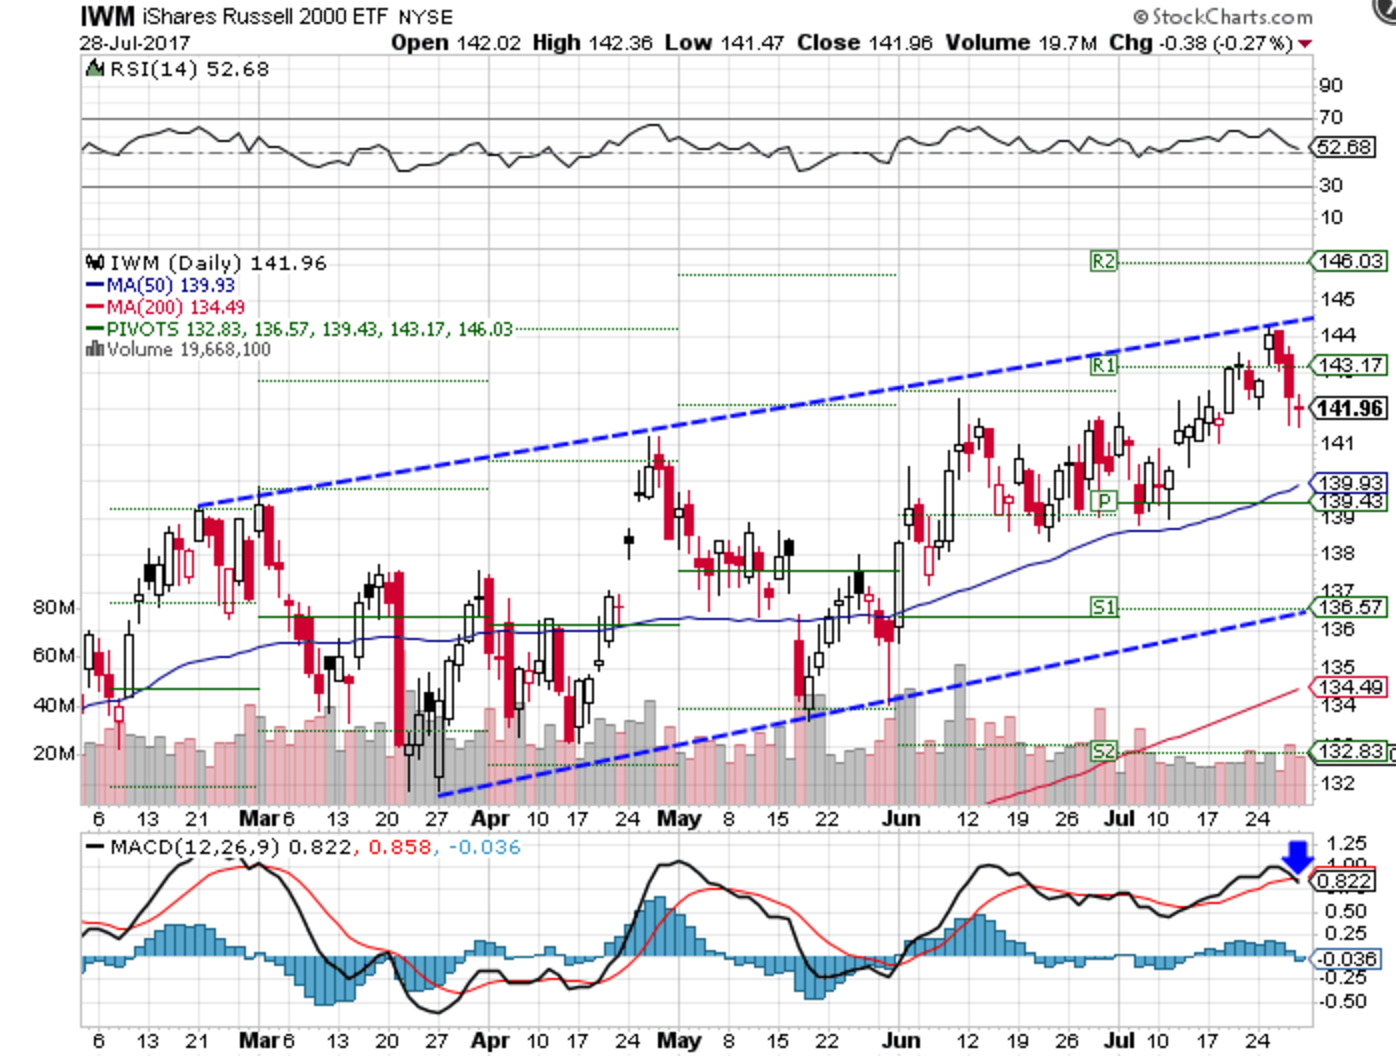 Technical chart showing performance of the iShares Russell 2000 Index ETF (IWM)